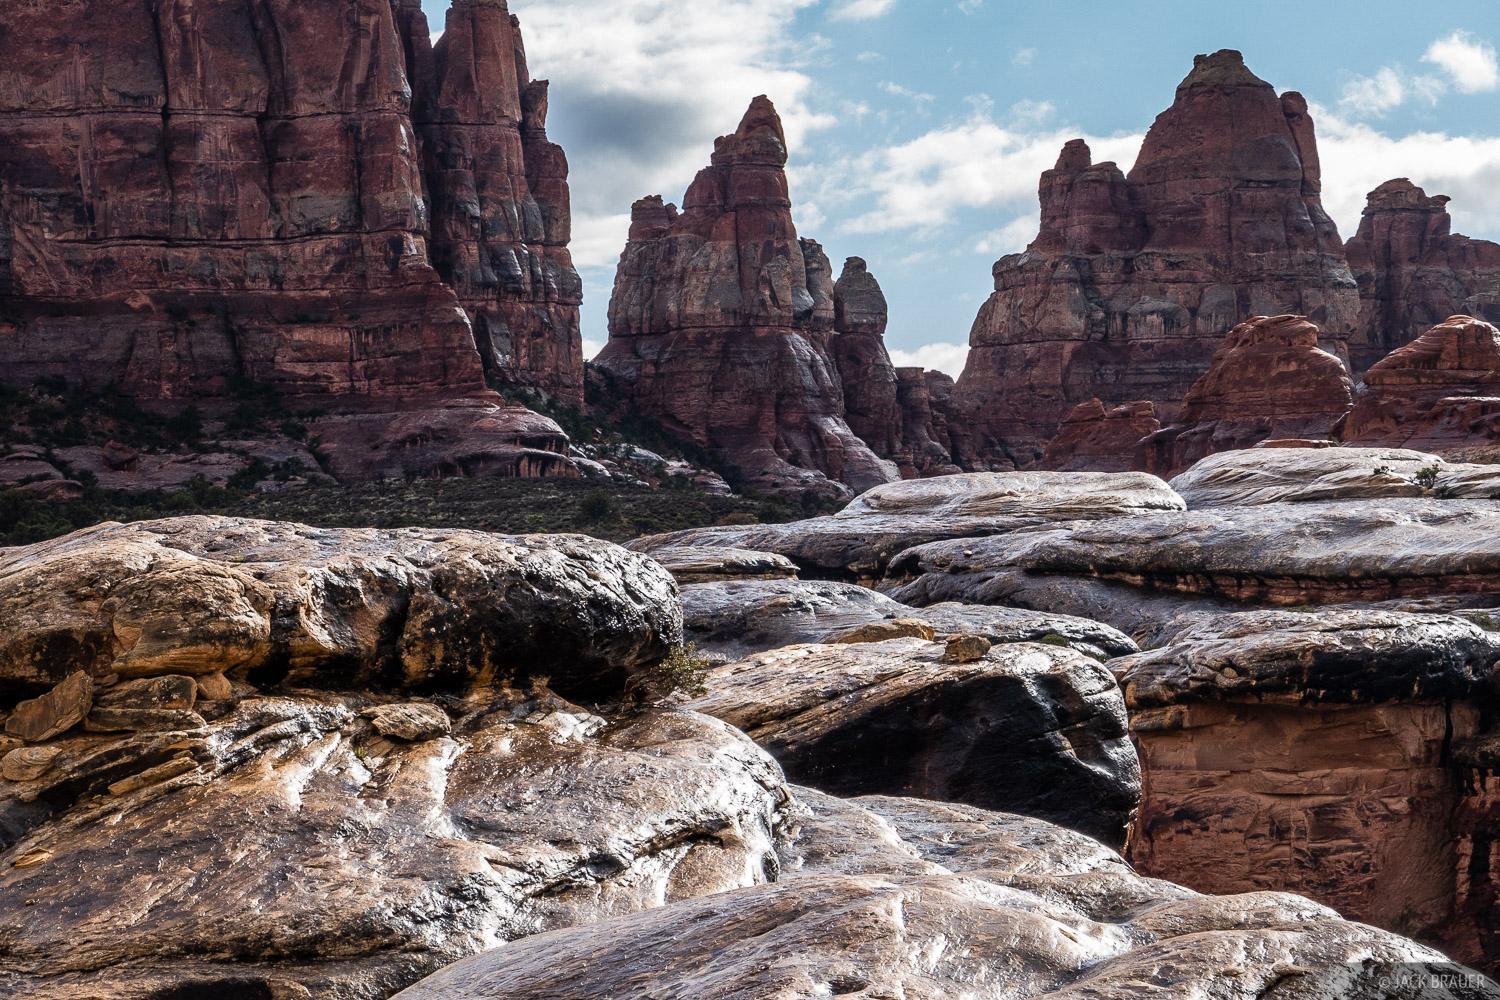 Canyonlands National Park, Needles District, Utah, rain, photo